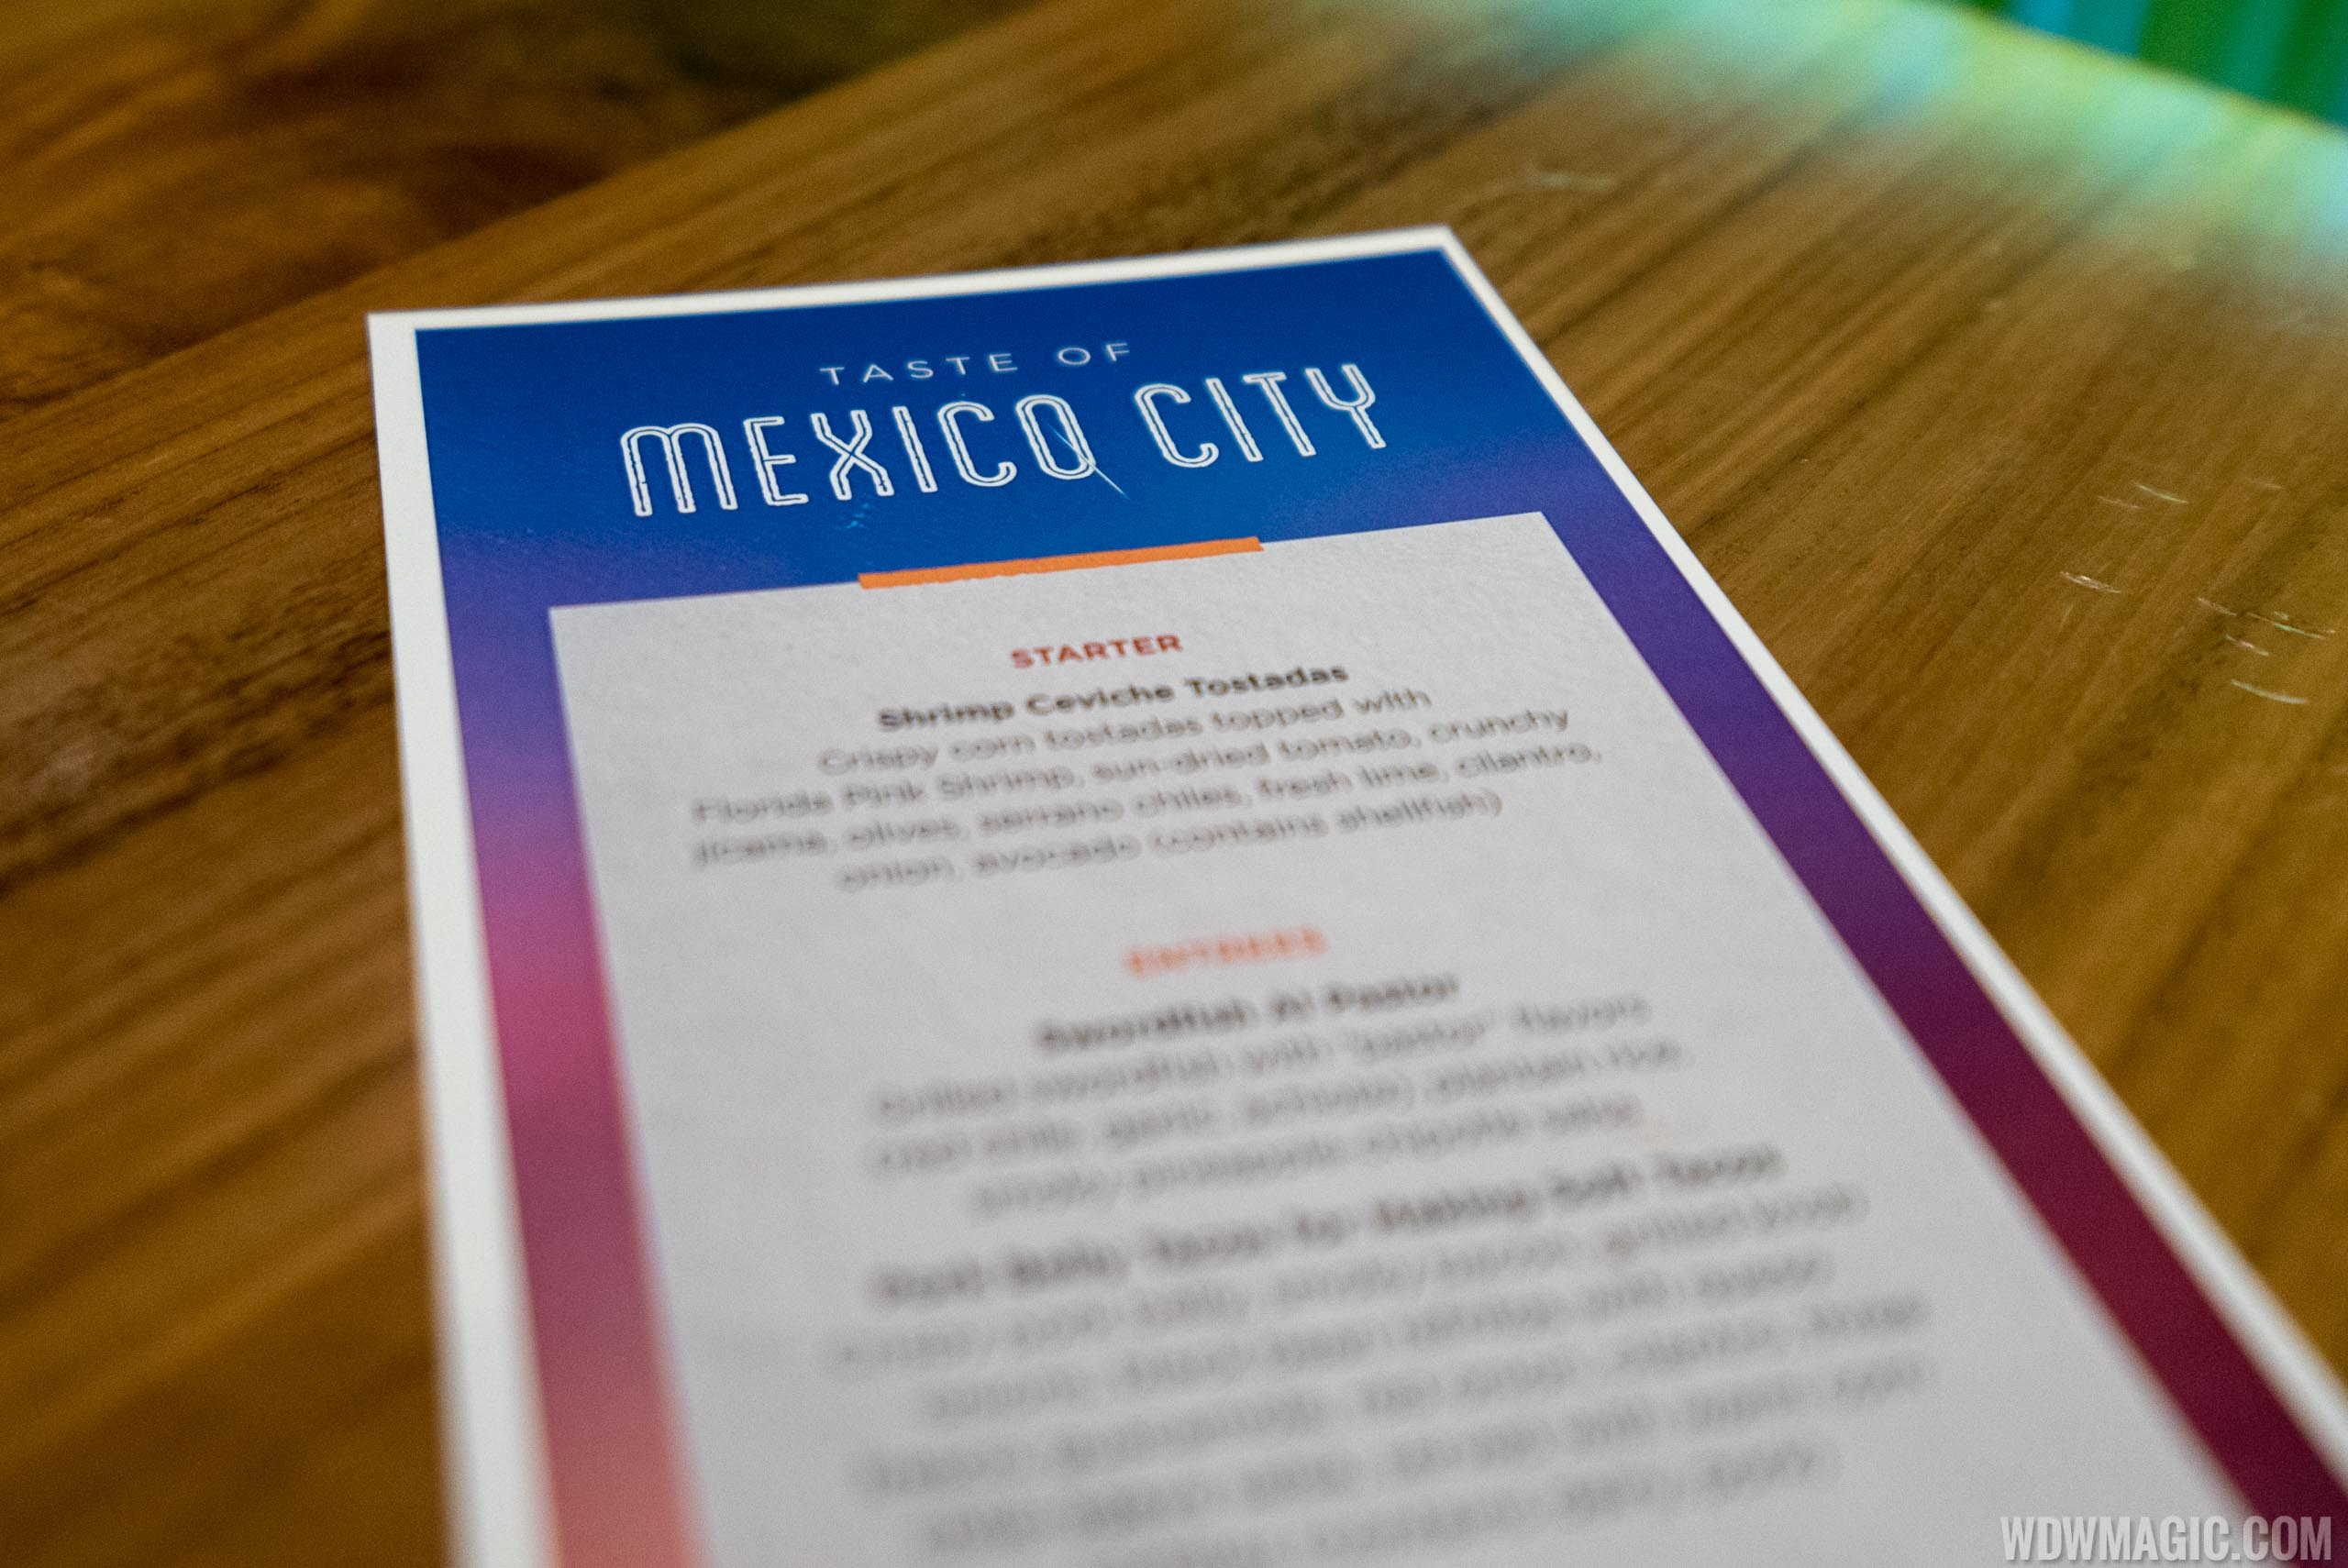 Frontera Cocina - Taste of Mexico City - menu